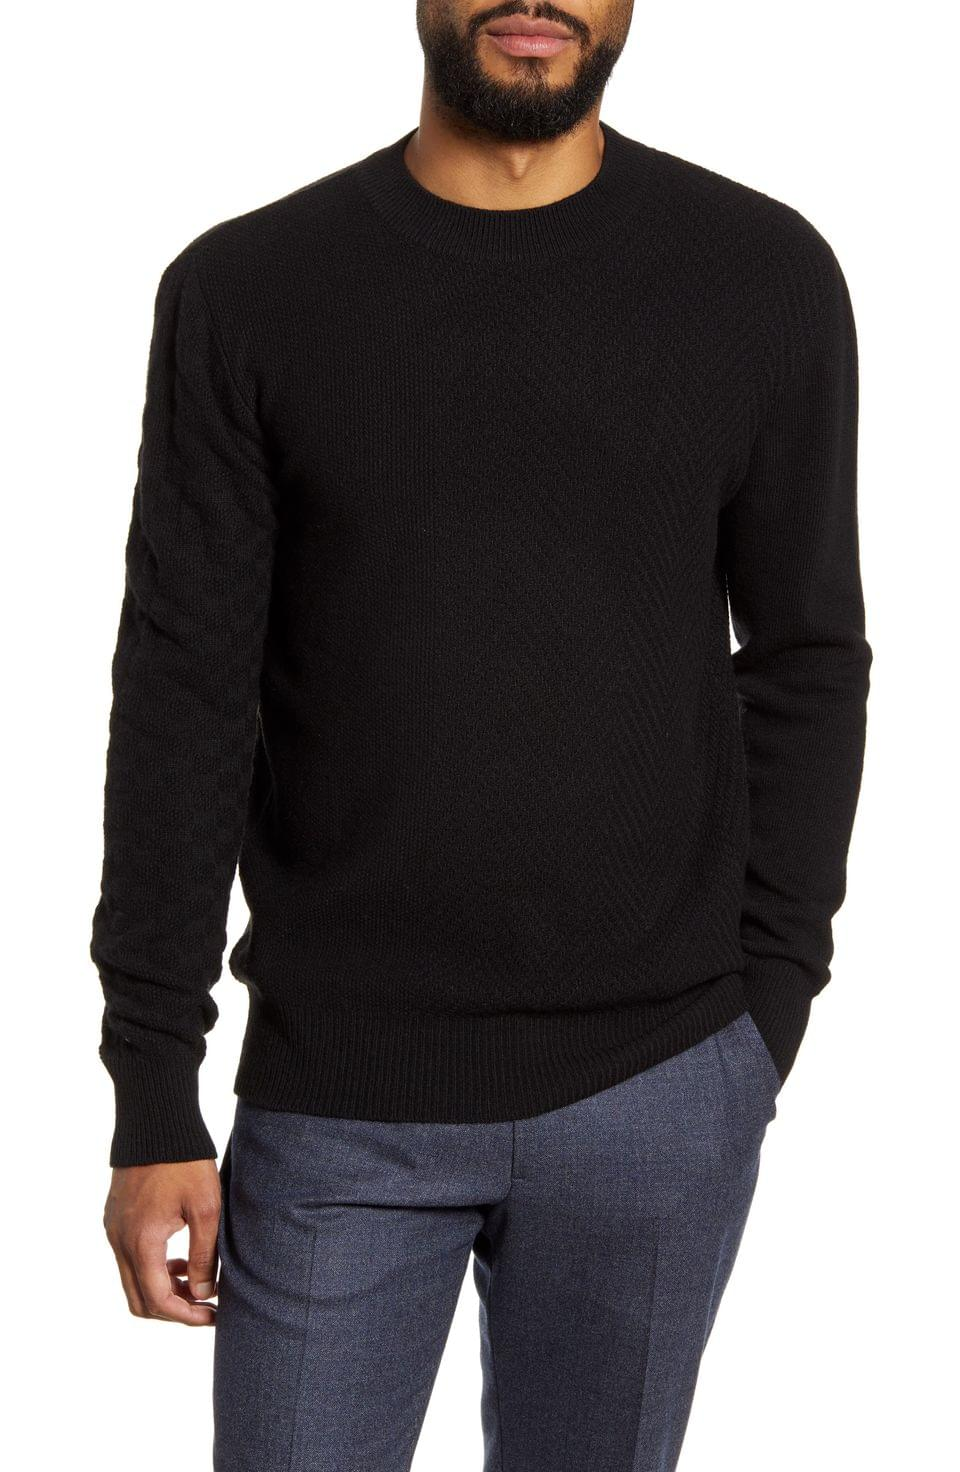 Men's Oliver Spencer Blenheim Slim Fit Crewneck Wool Sweater